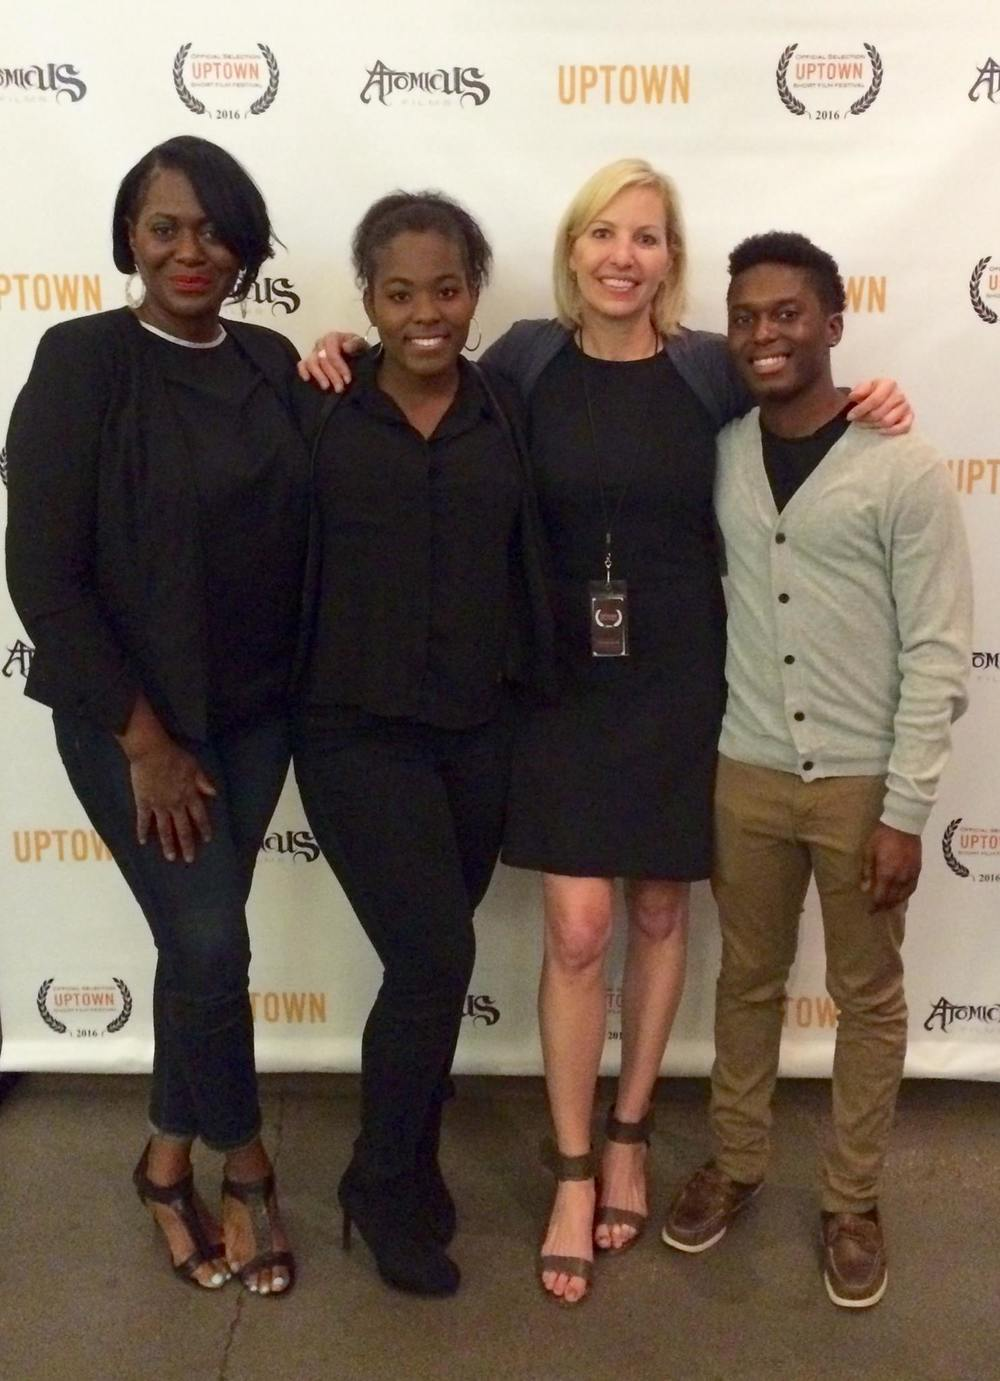 From left, Michelle Thomas, Angelica Flowers, Kelly Amis and Zachary Dorcinville.